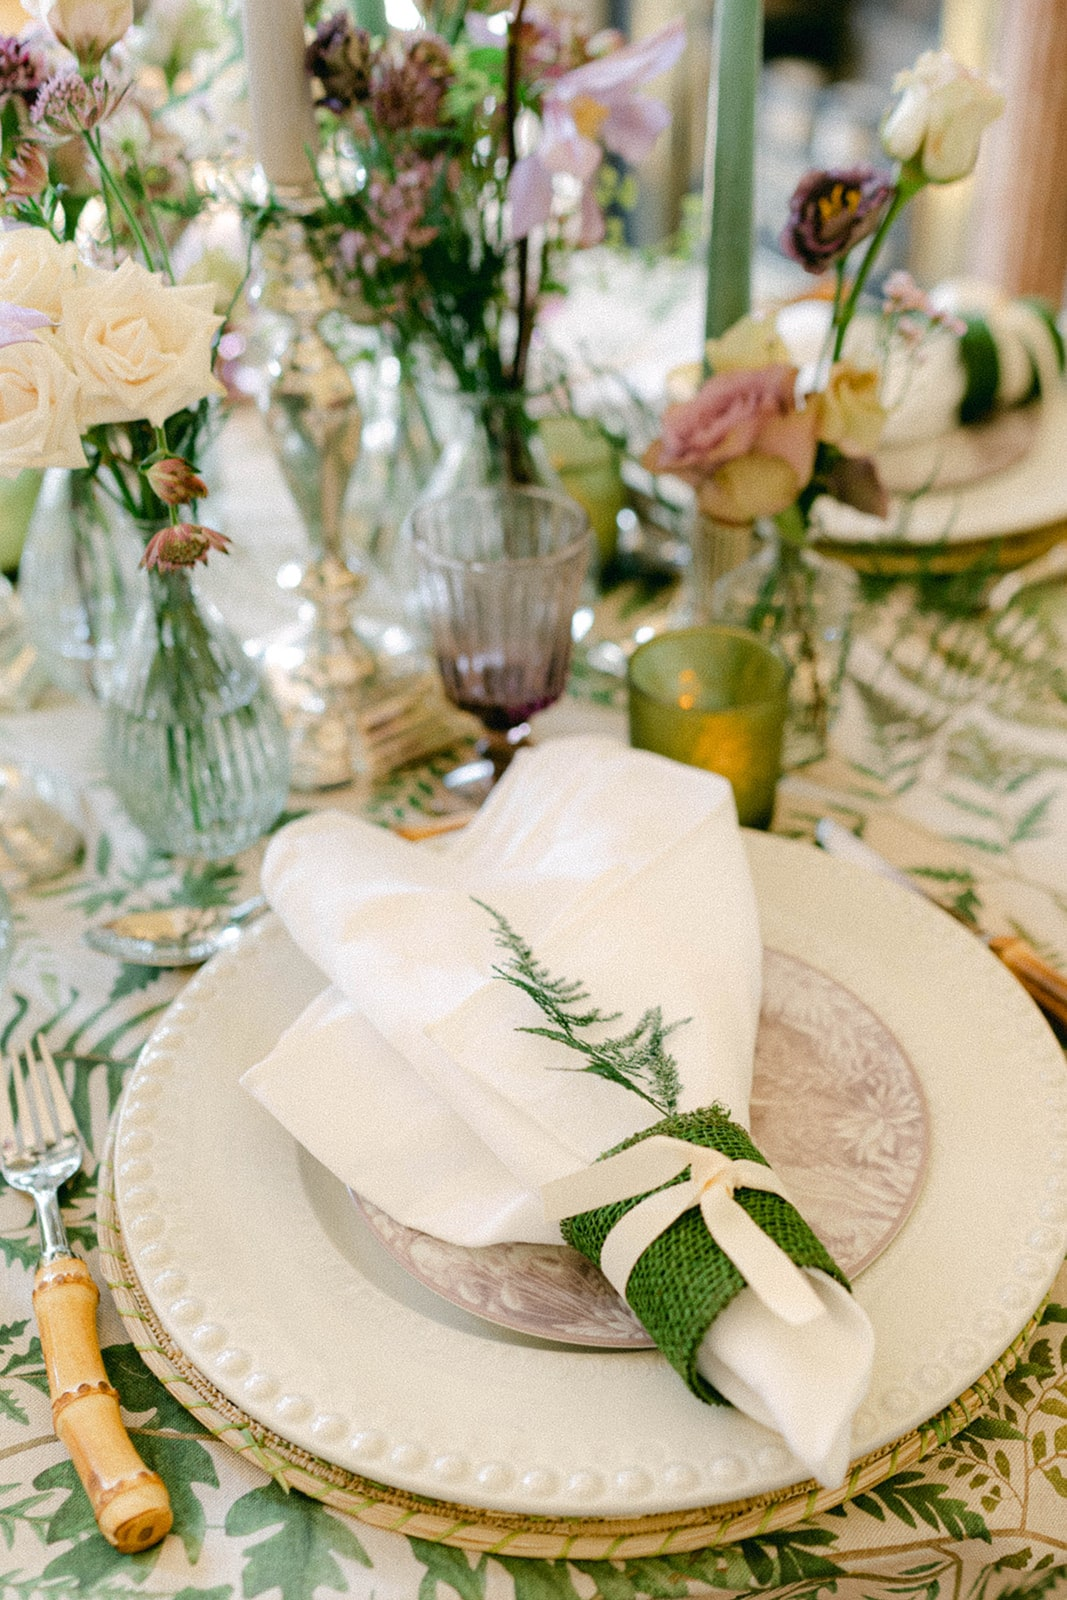 fern tied with burlap napkins place setting